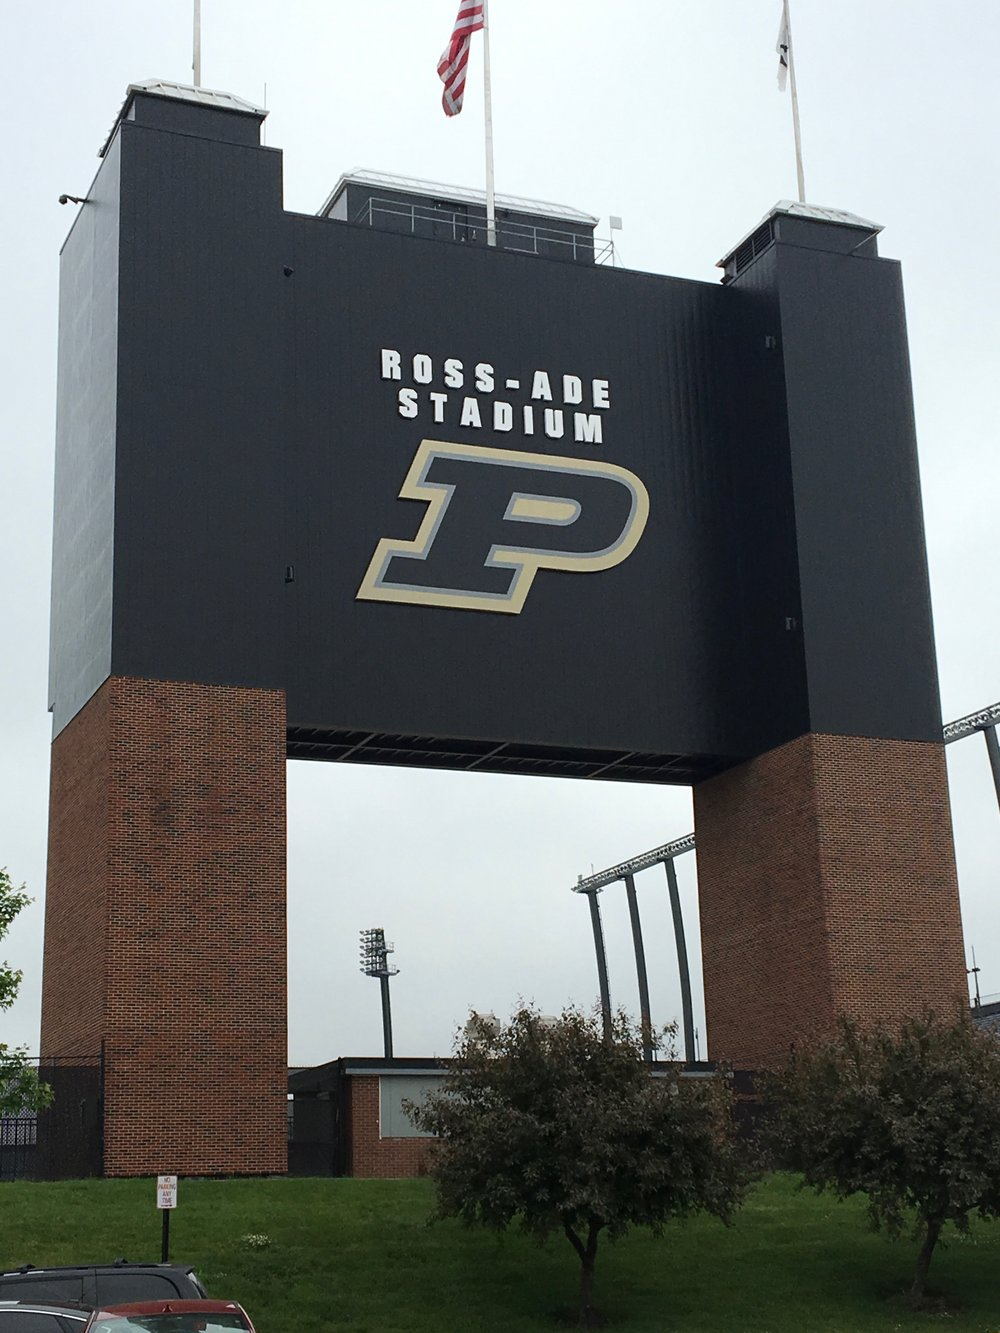 AFTER - Transformation to a sophisticated sports marketing look.  Signage proudly reflects Purdue's brand and purpose.